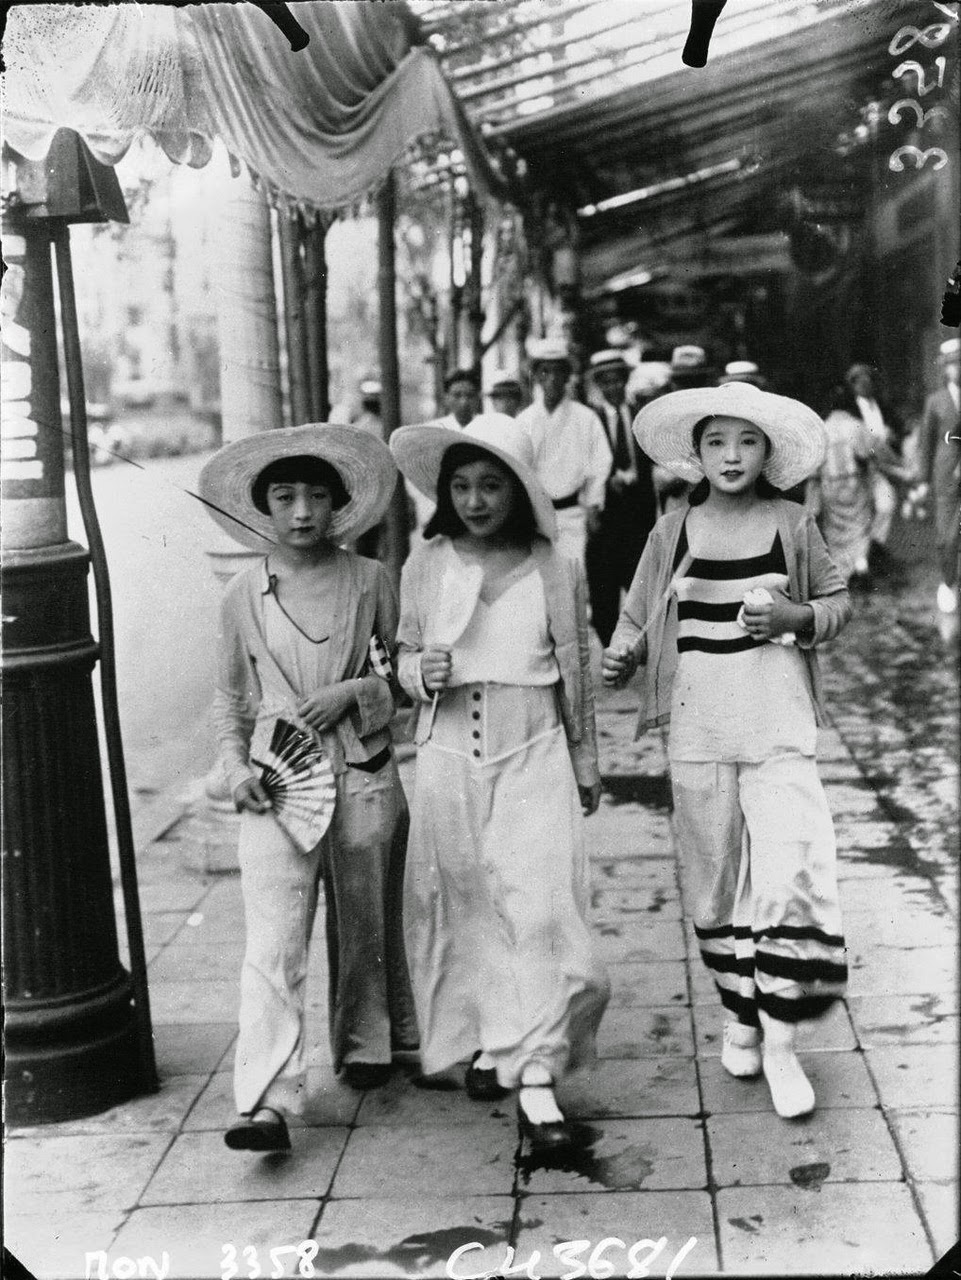 Street Fashion In Japan 1932 Vintage Everyday